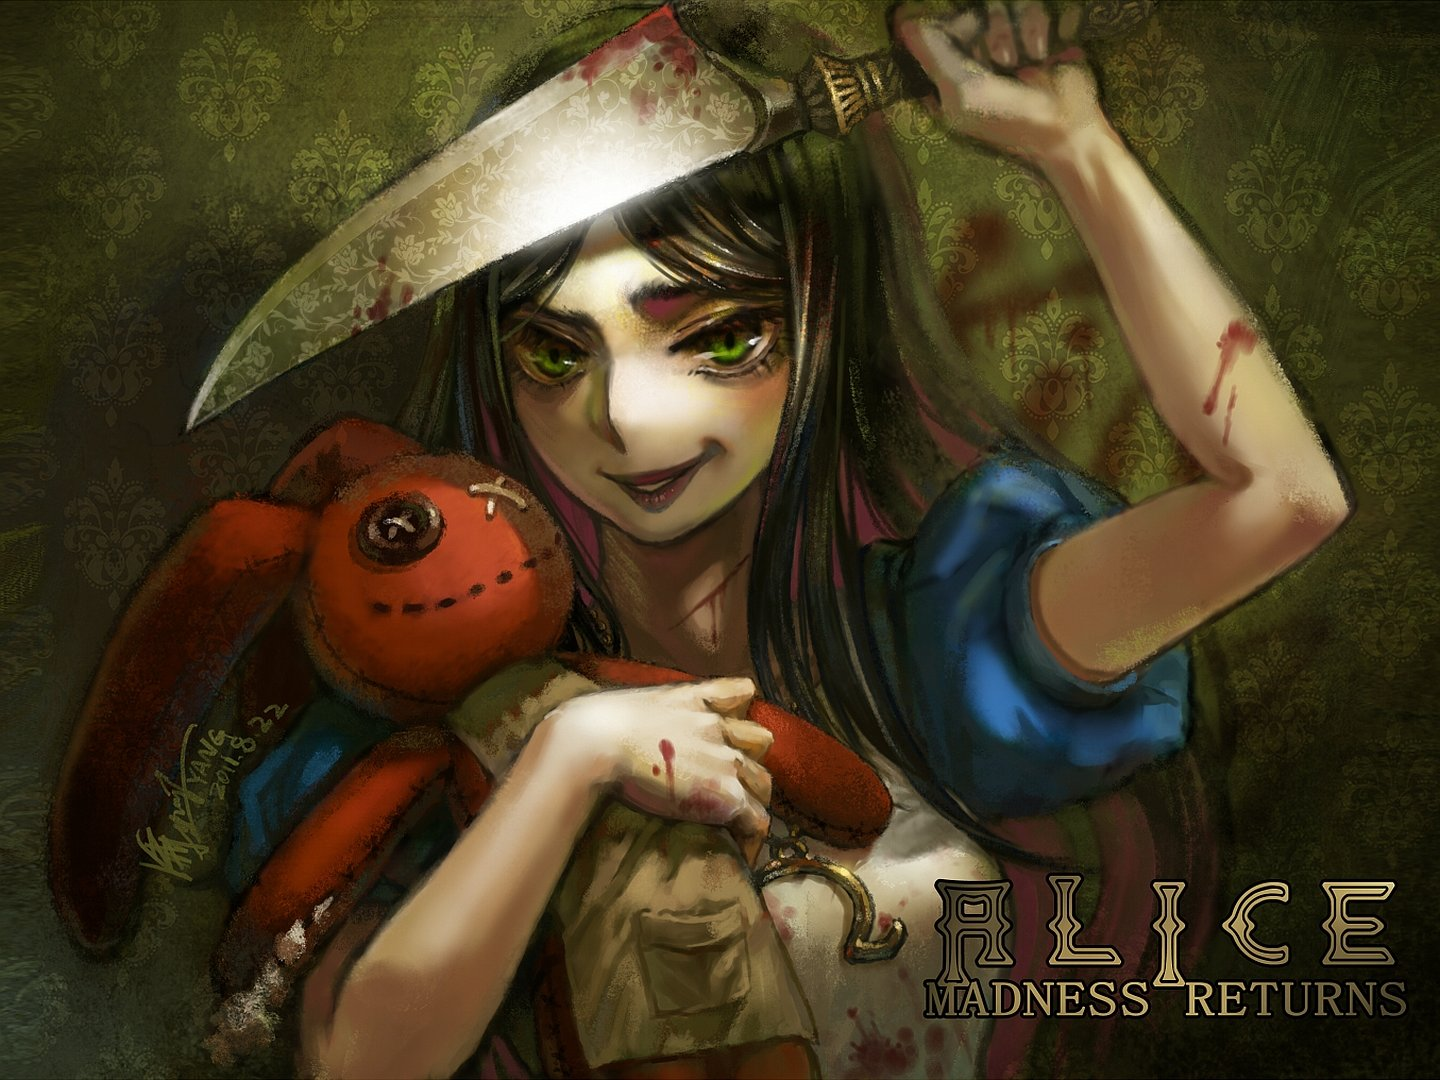 Best Alice: Madness Returns wallpaper ID:27554 for High Resolution hd 1440x1080 desktop